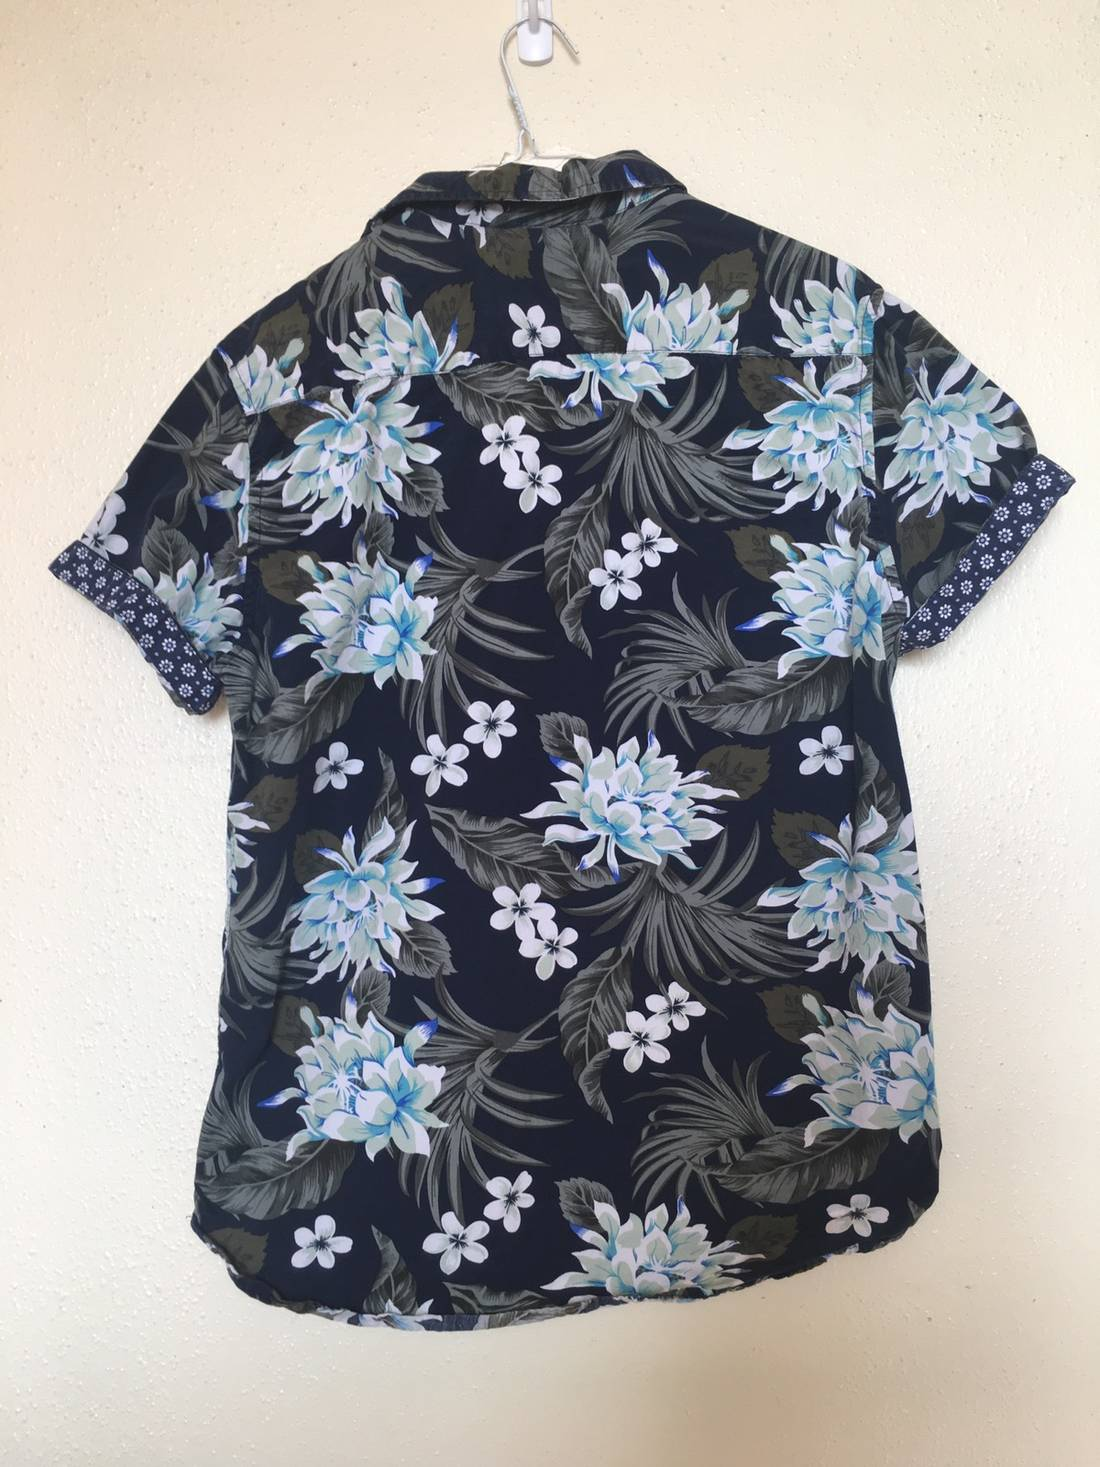 Hawaiian Shirt Denim And Flower Hawaiian Floral Shirt Size M